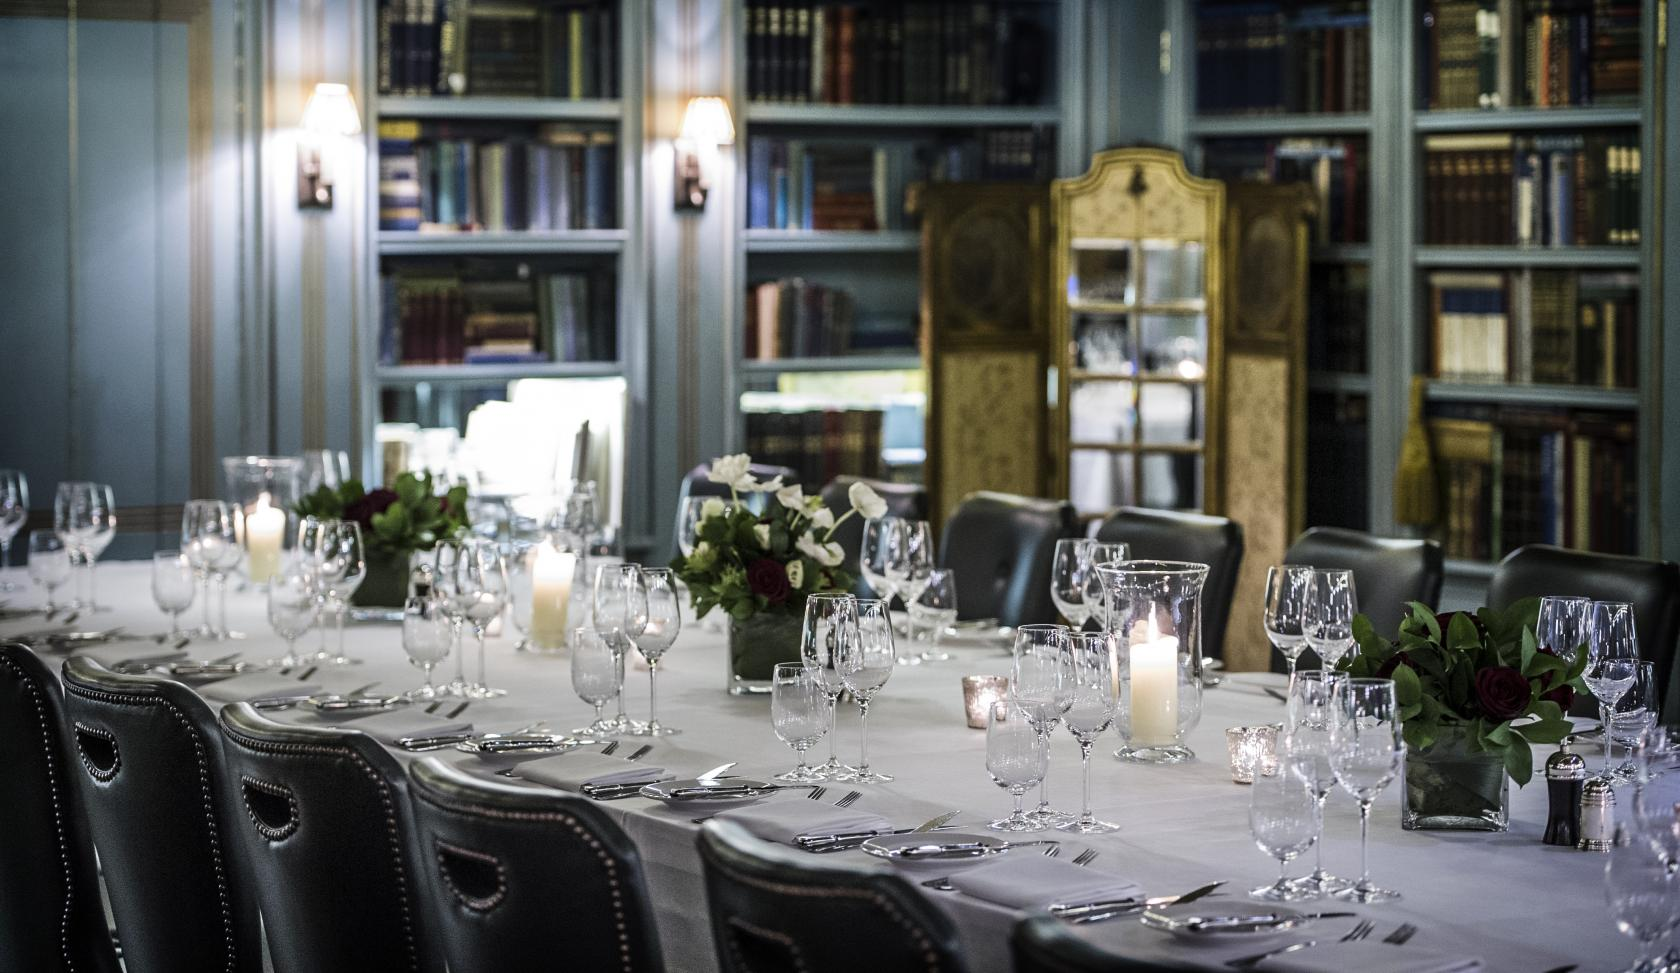 Swallow street rooms at bentley 39 s oyster bar grill for Best private dining rooms west end london